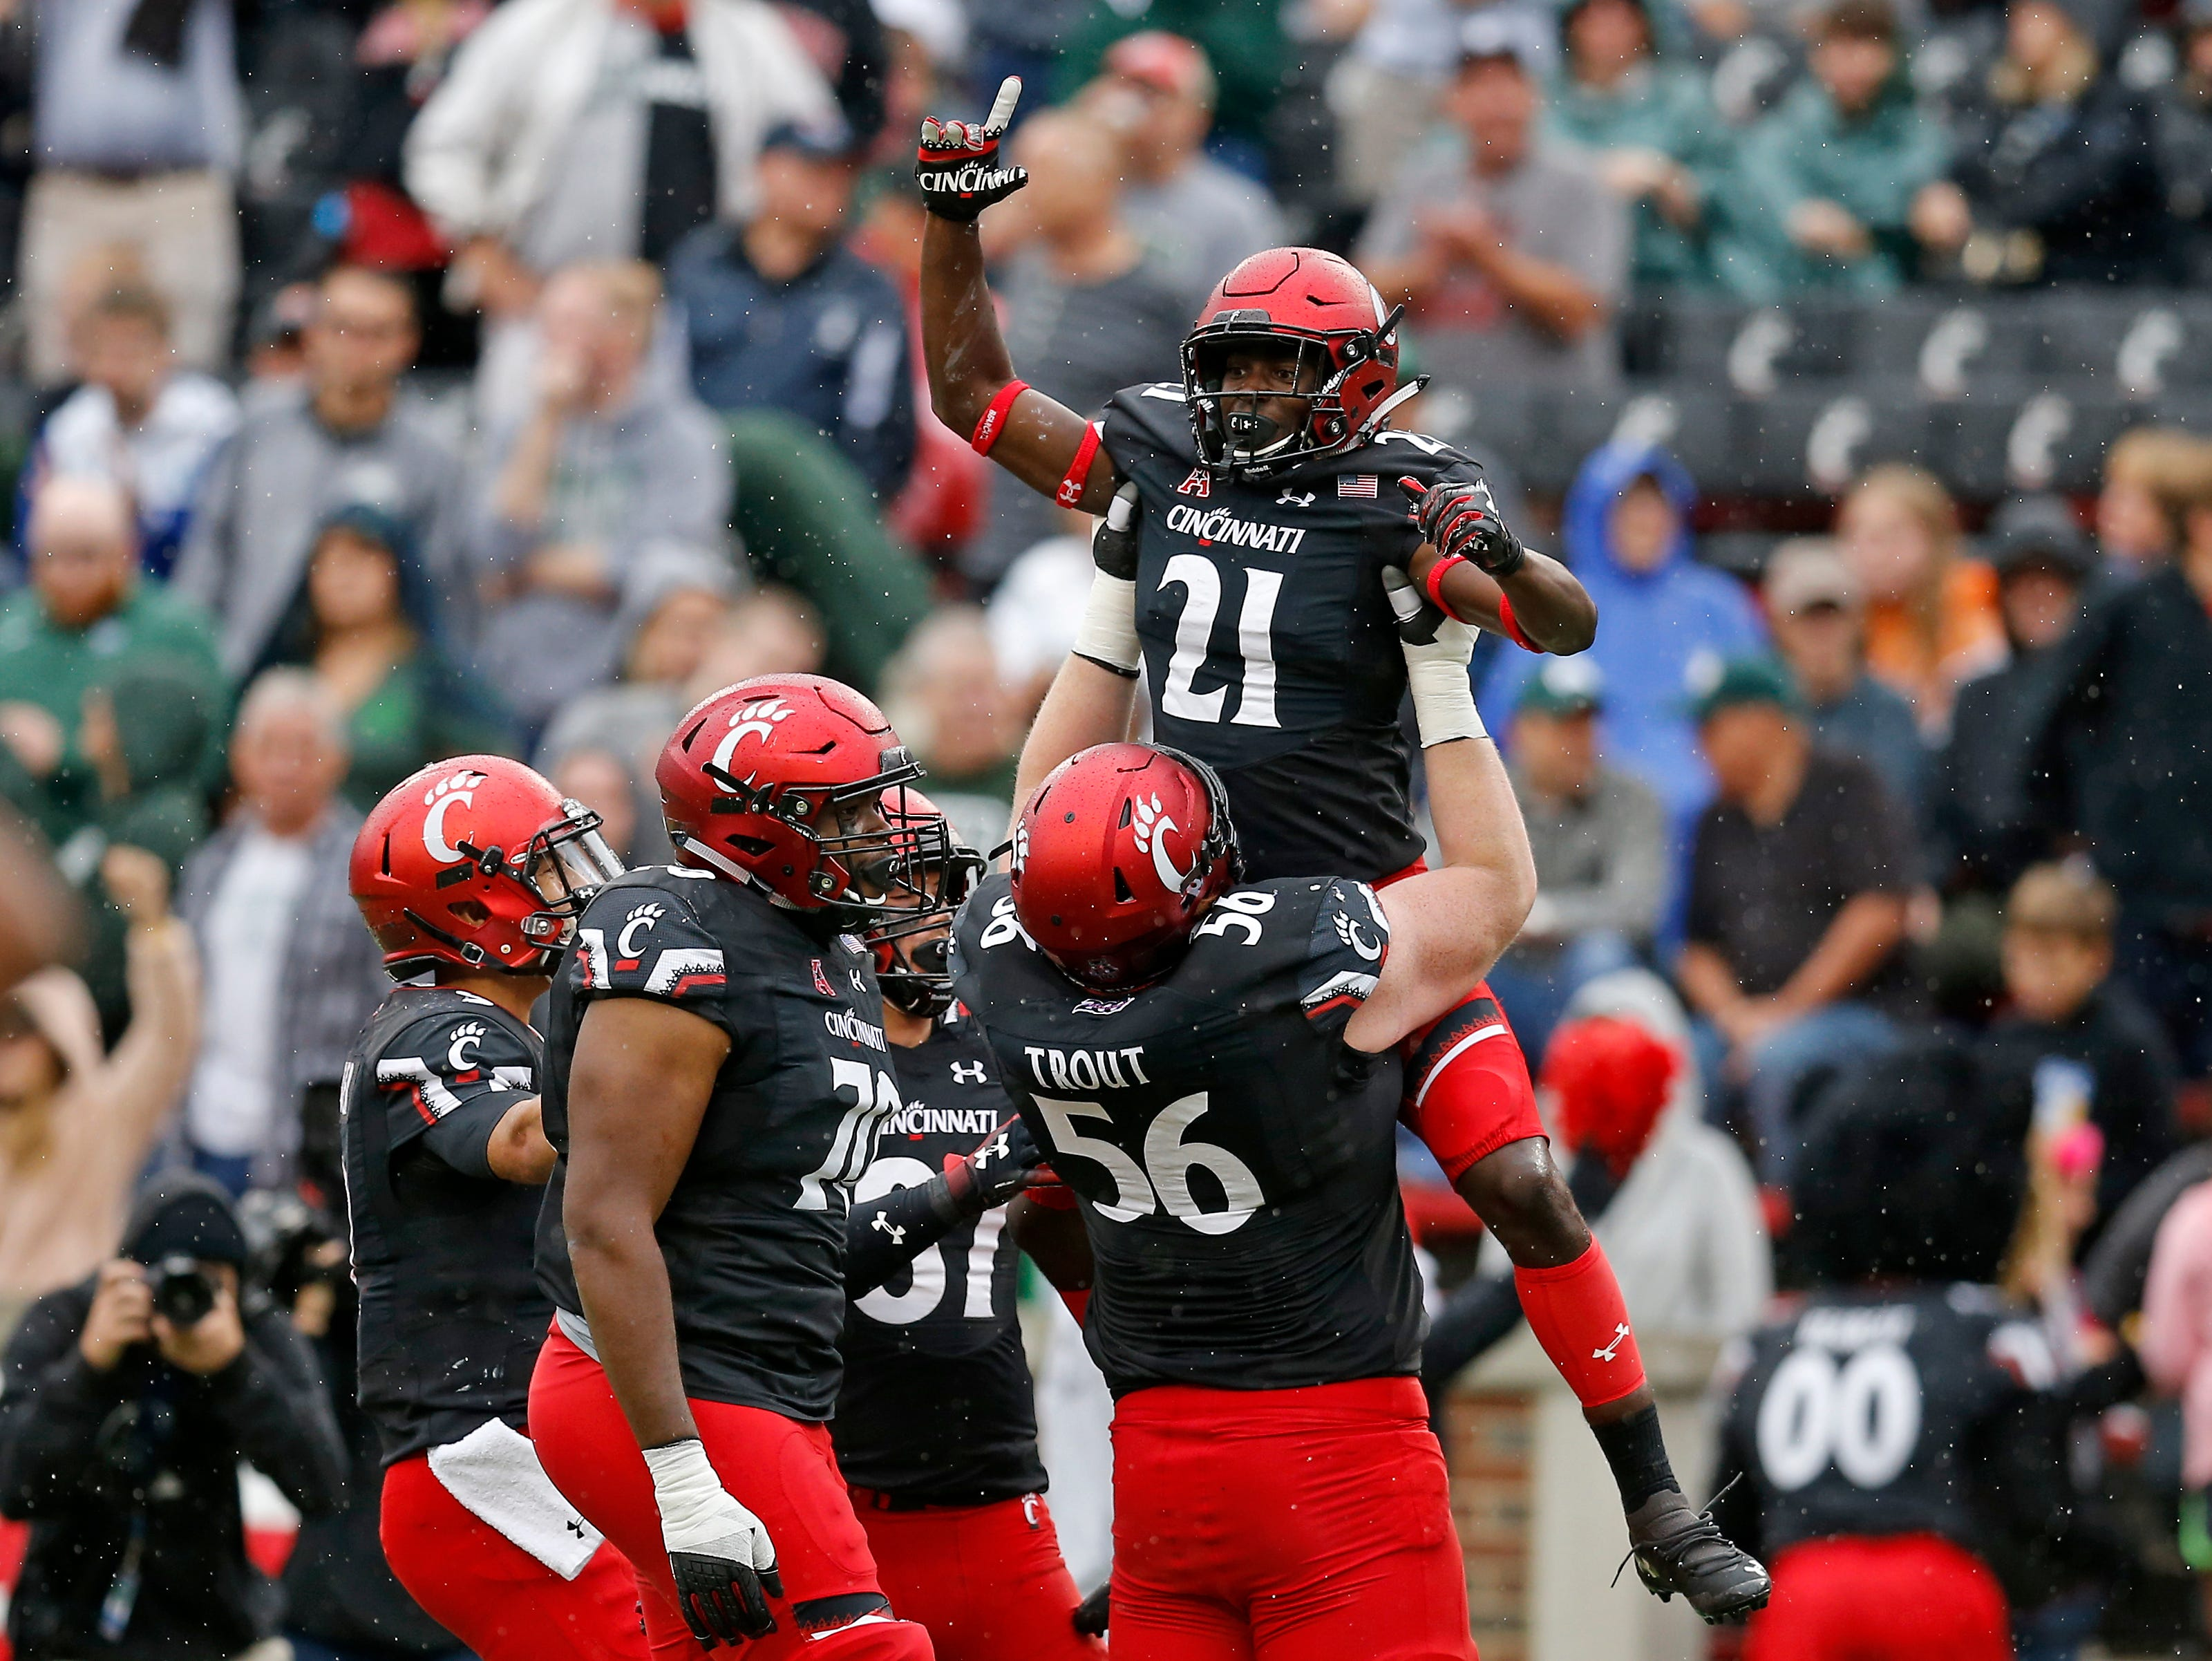 Cincinnati Bearcats wide receiver Jayshon Jackson (21) is lifted by his team mates after scoring a touchdown in the fourth quarter of the NCAA football game between the Cincinnati Bearcats and the Ohio Bobcats at Nippert Stadium on the University of Cincinnati campus in Cincinnati on Saturday, Sept. 22, 2018. The Bearcats overcame a 24-7 deficit at halftime to win 34-30, improving to 4-0 on the season.